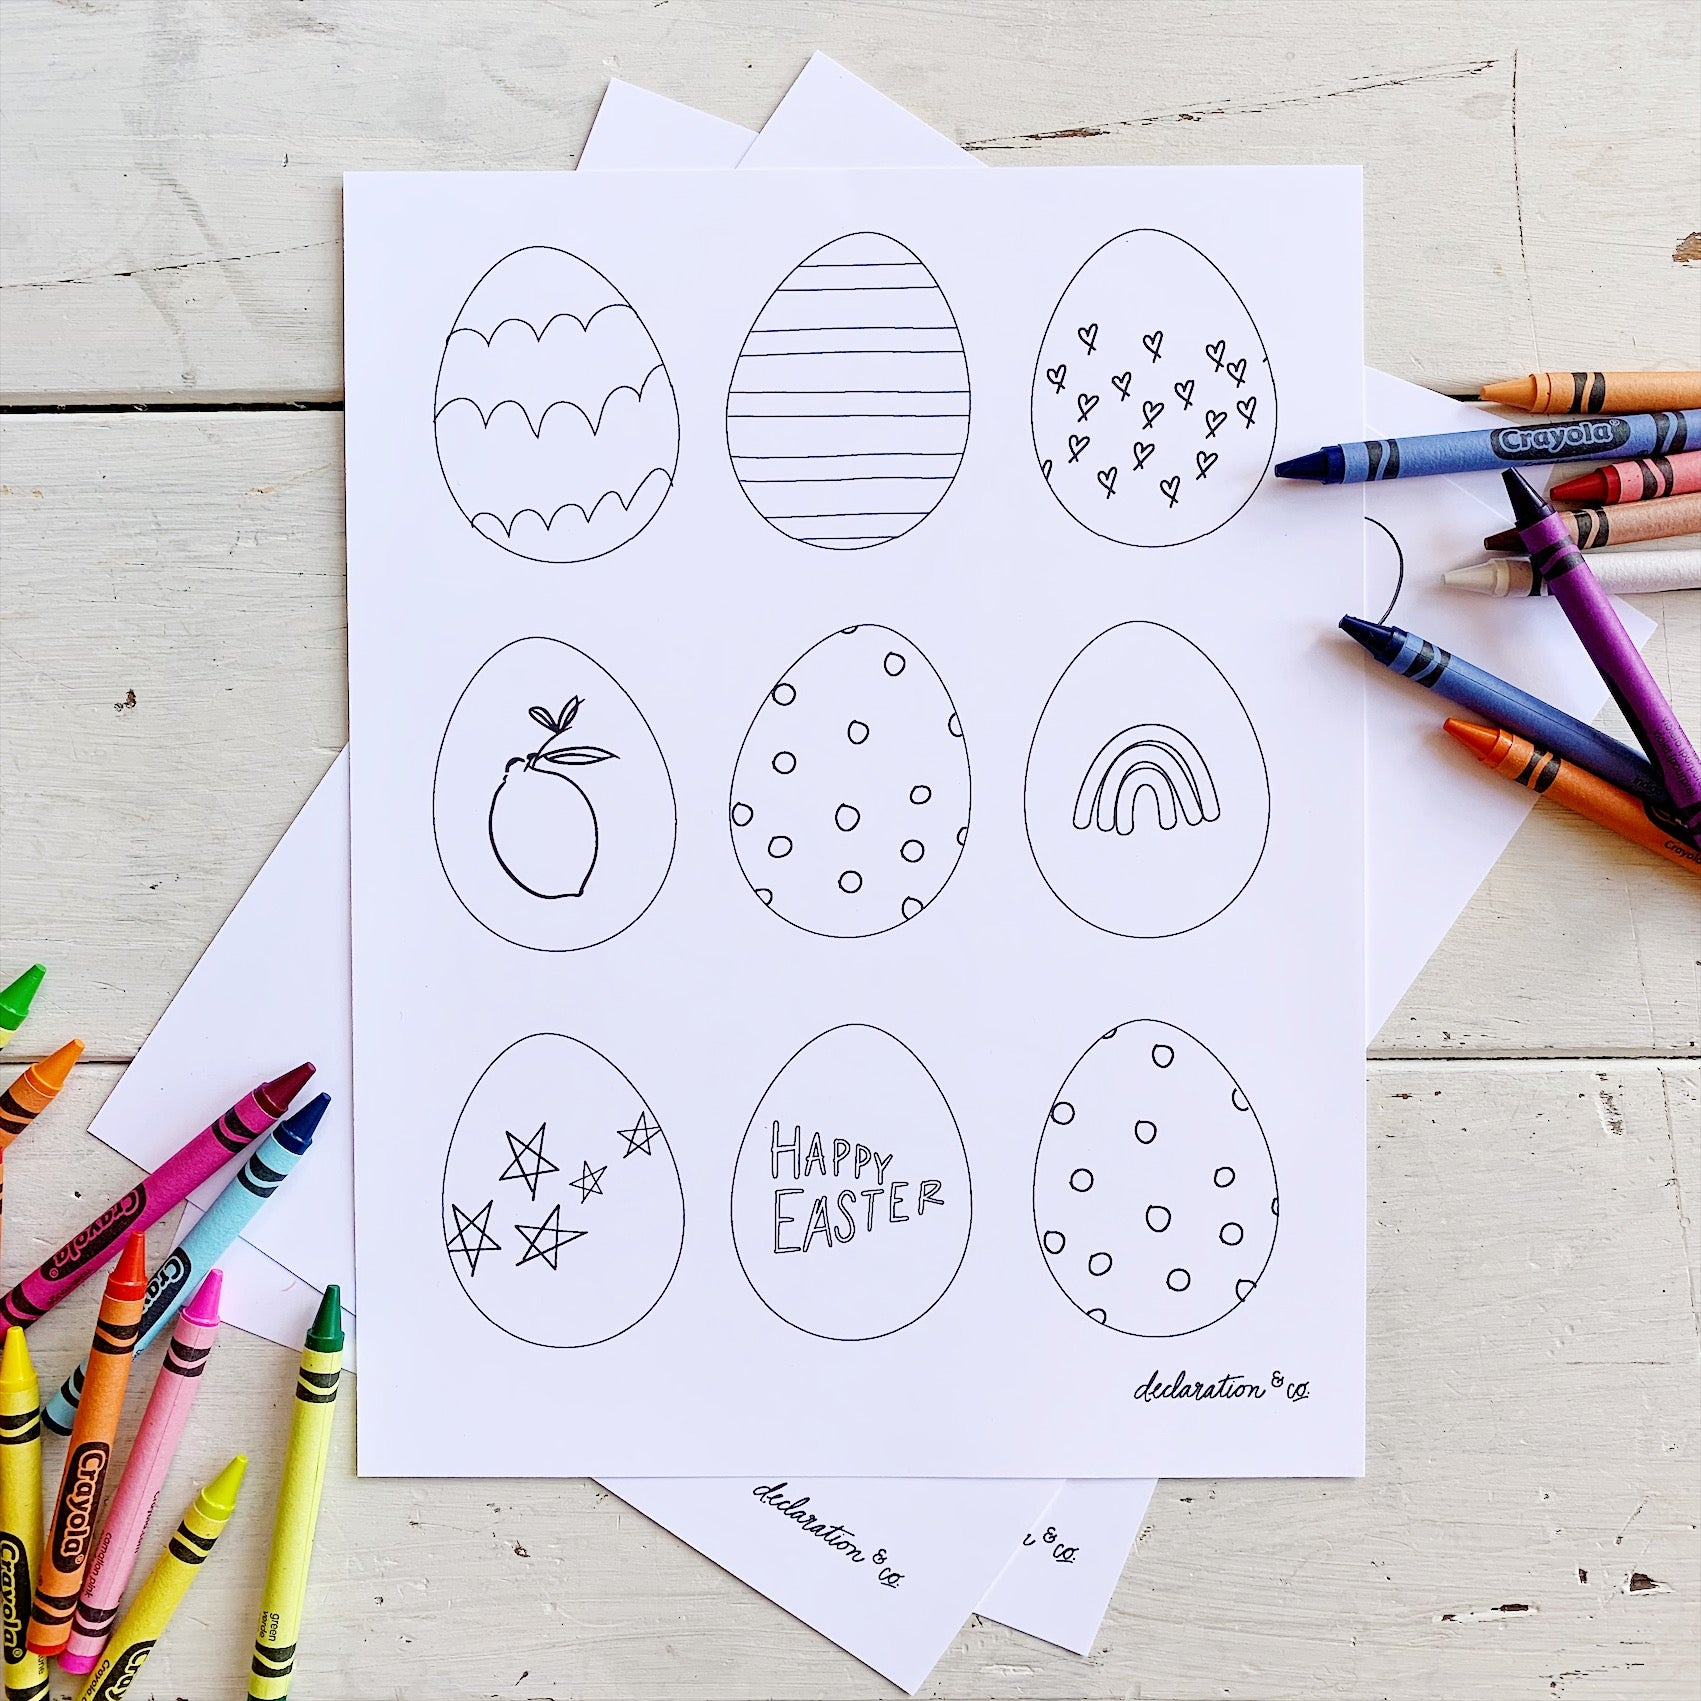 Free Easter Coloring Sheet Download